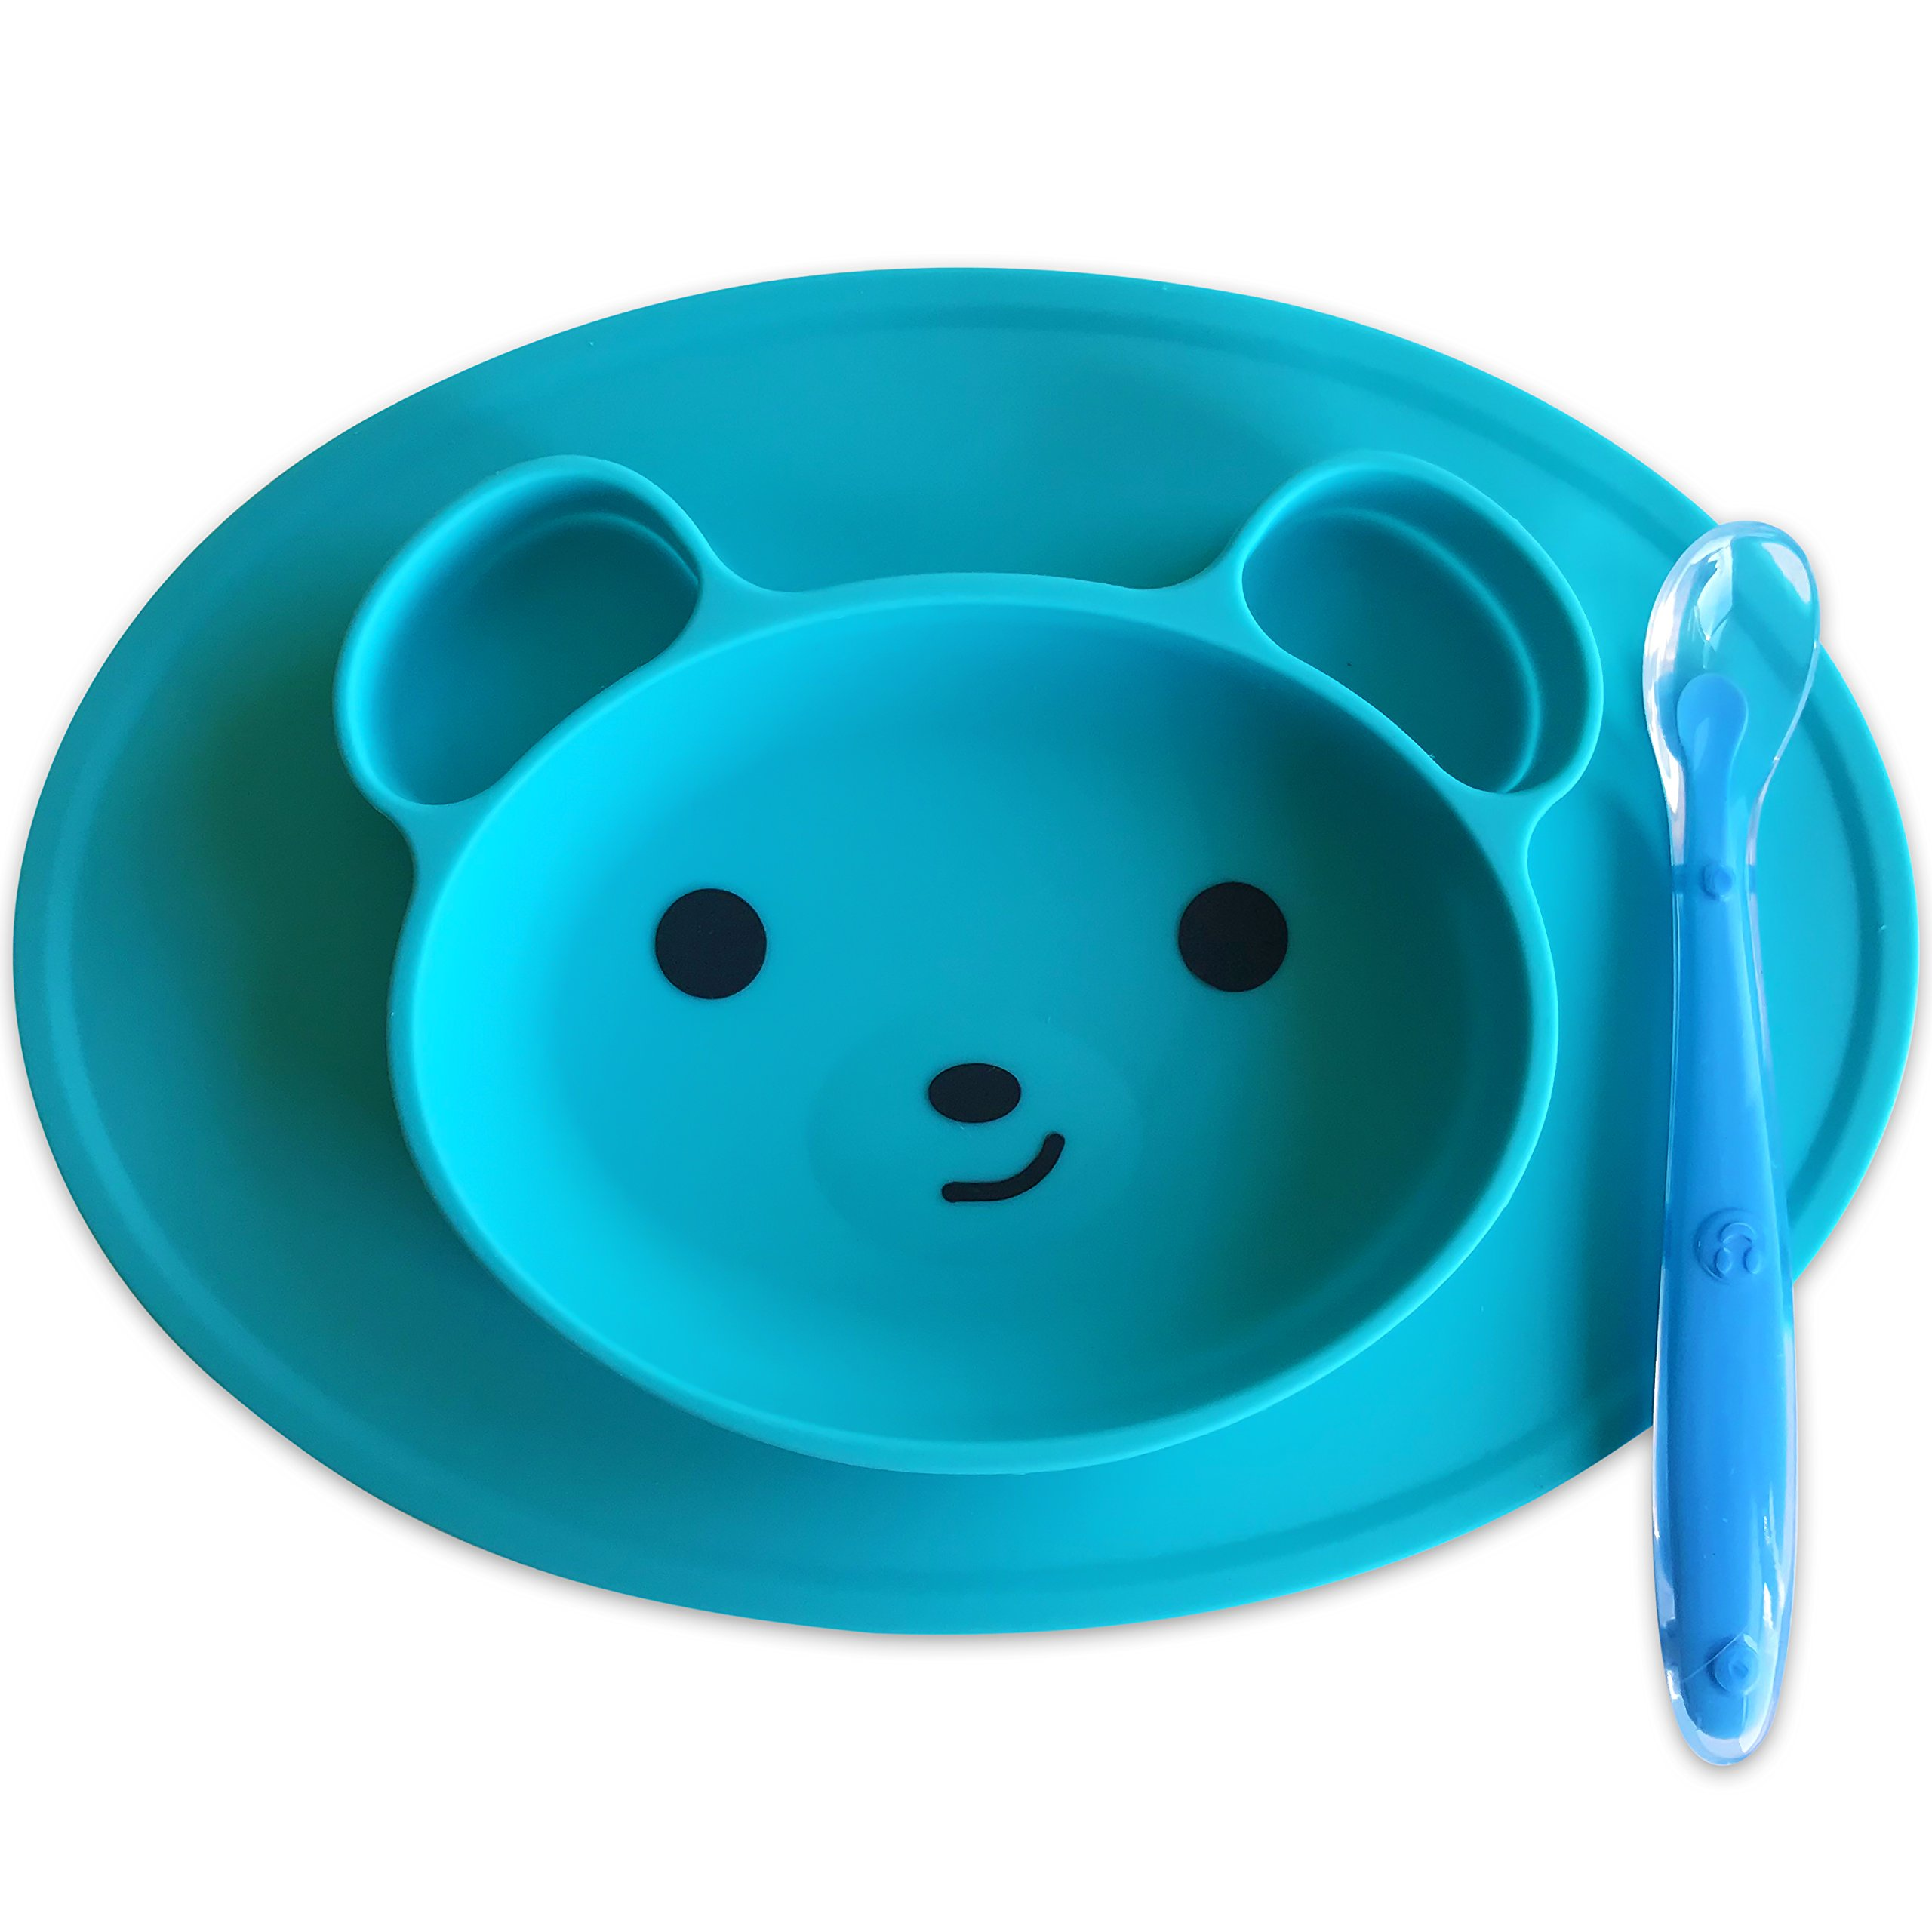 Silicone Baby Placemat [Happy Bear] Silicone Placemat For Toddlers Plus 1 Baby Spoon by Magnetor Plus (Blue)